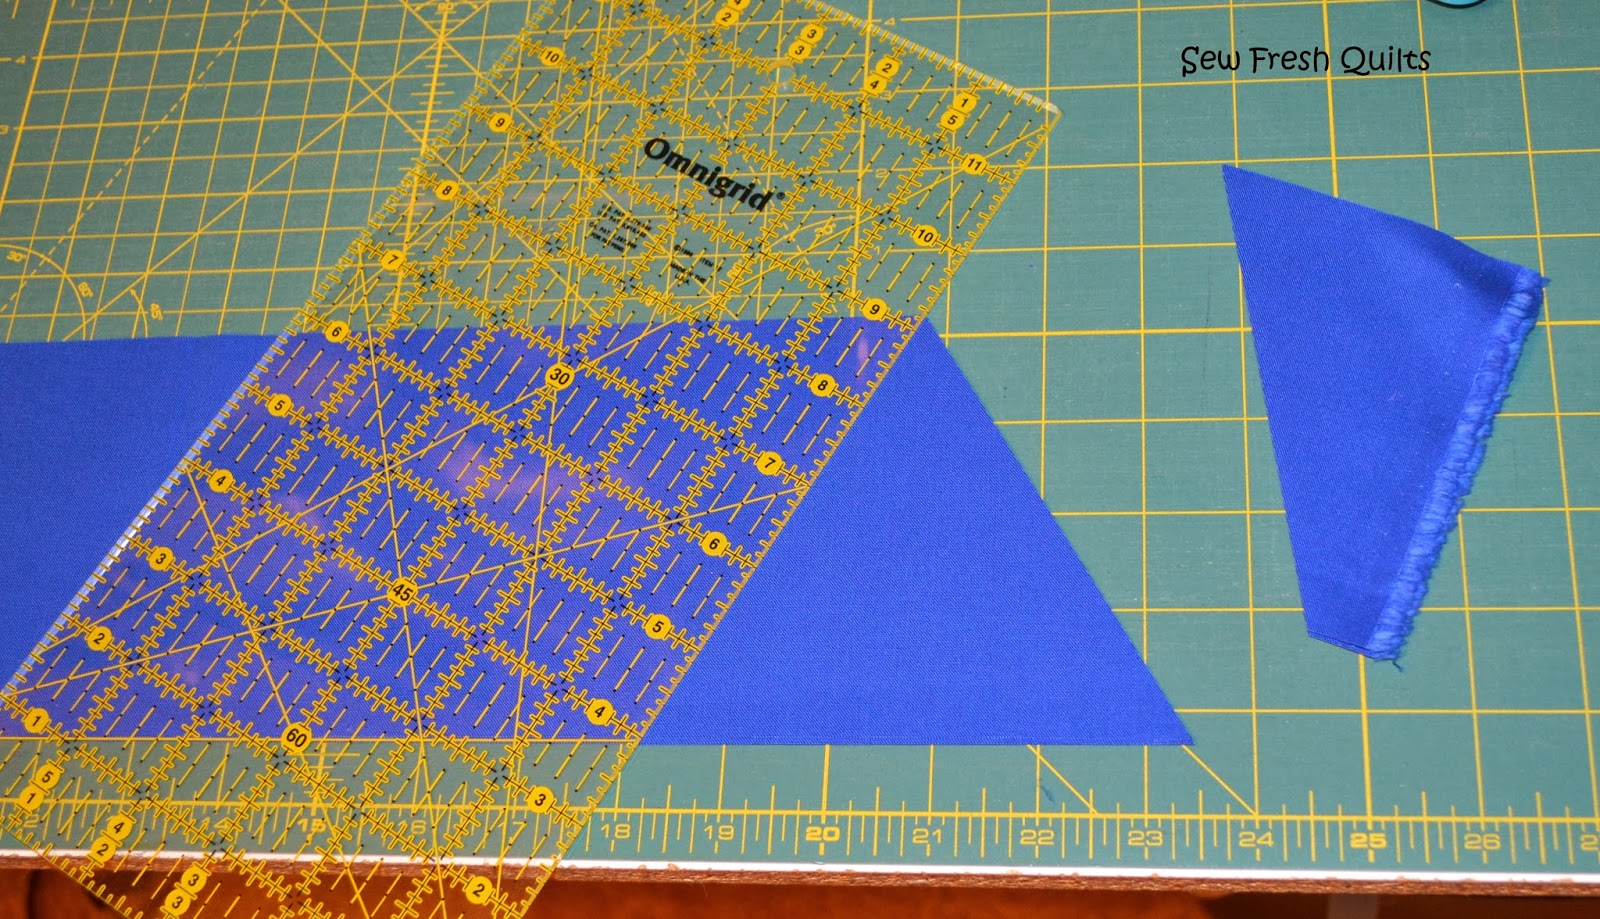 Sew Fresh Quilts Equilateral Triangle Quilt Tutorial